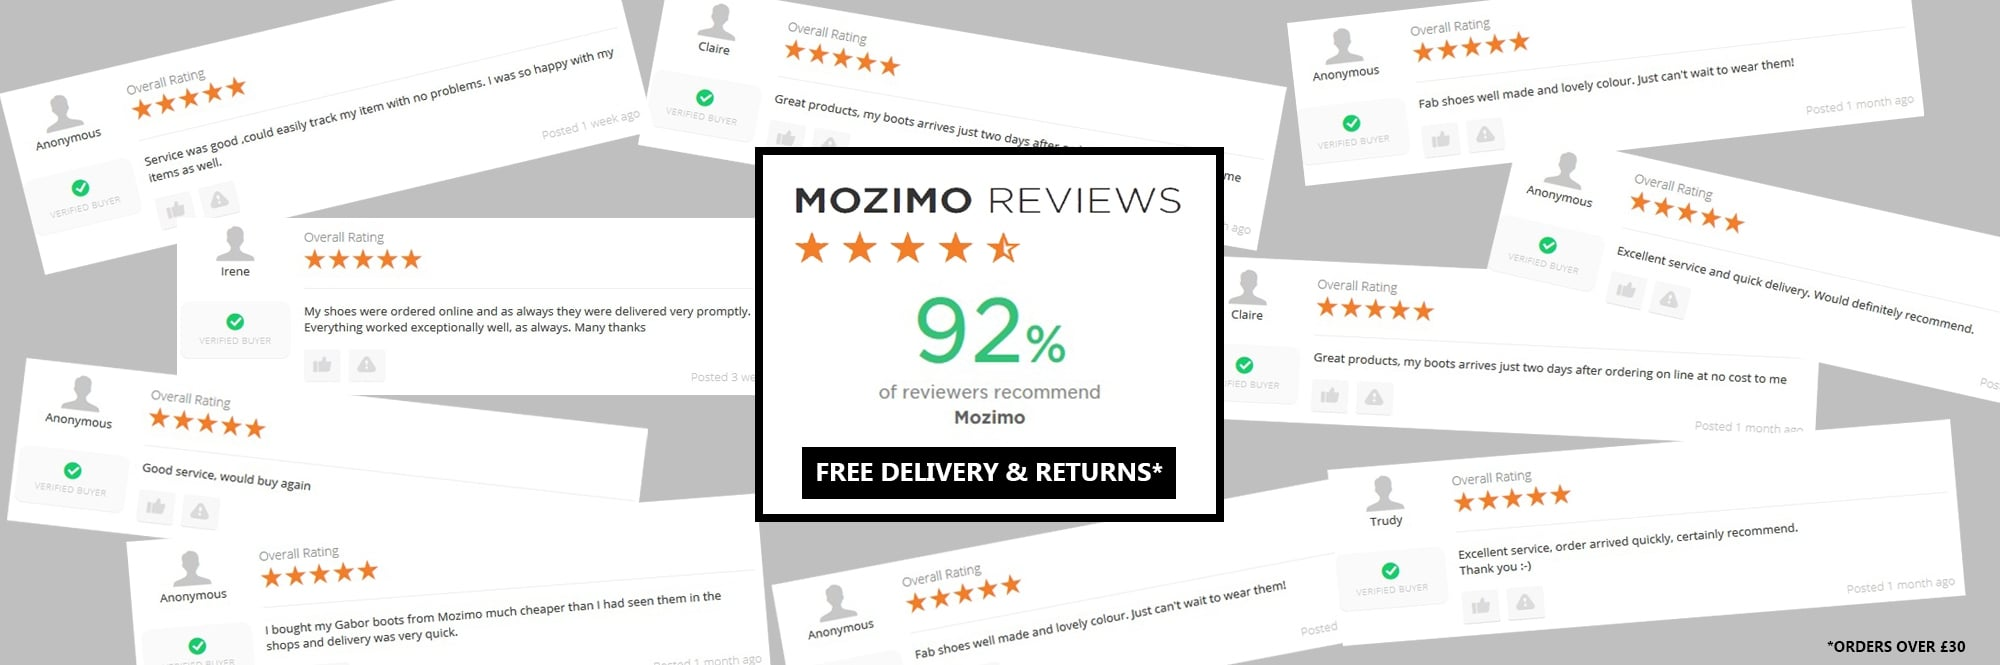 The Best Of Service At Mozimo